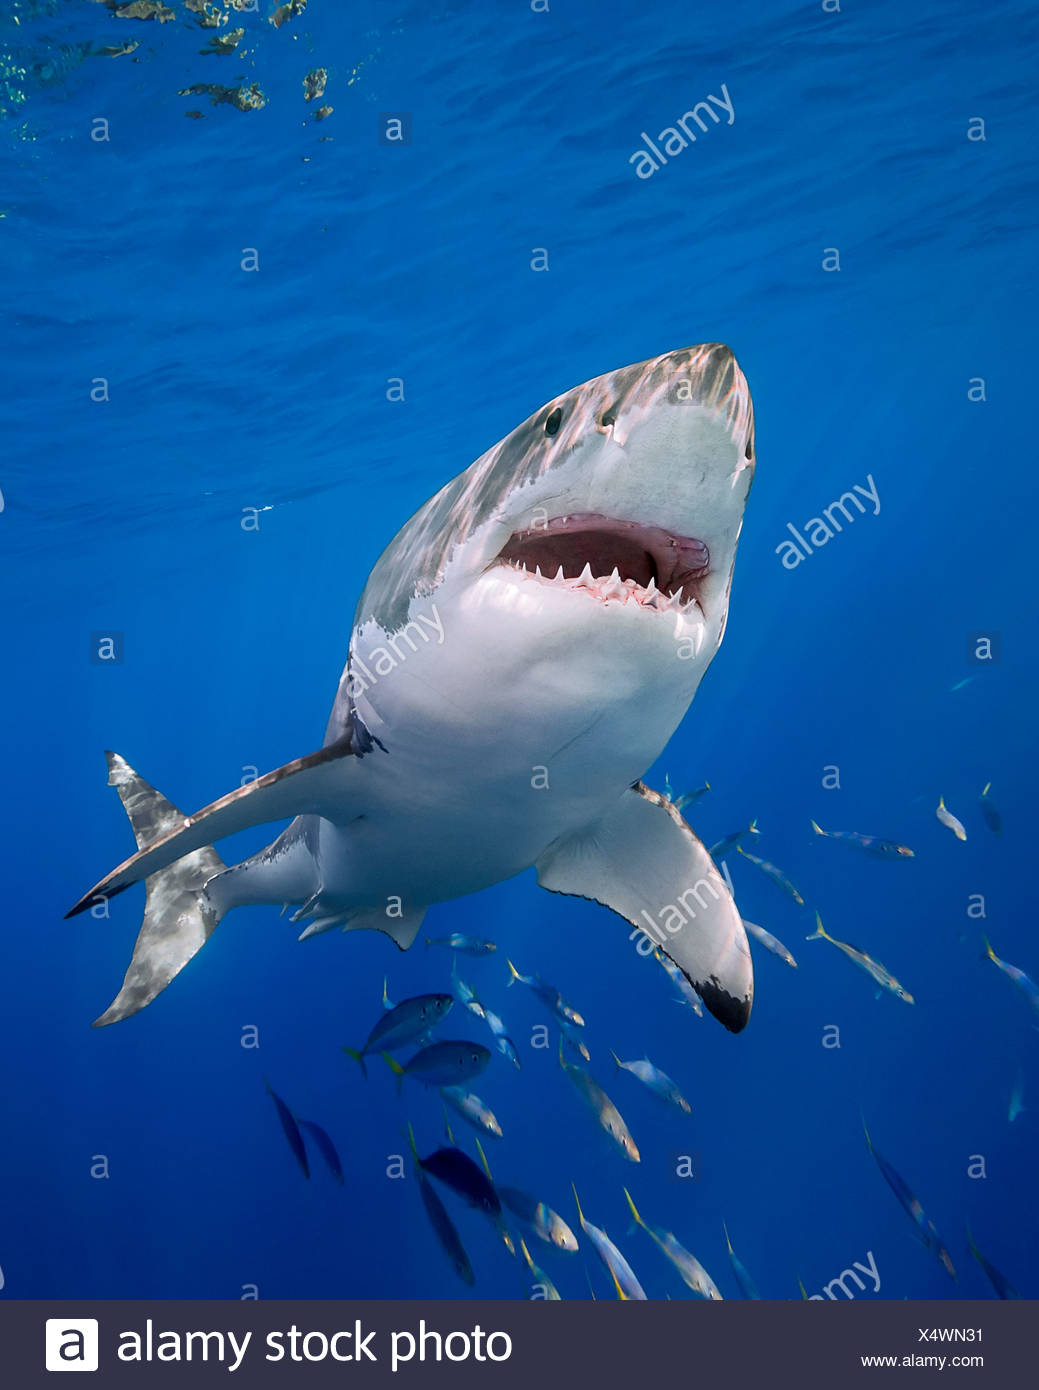 Great White Shark, Carcharodon carcharias, Guadalupe Island, Mexico Stock Photo